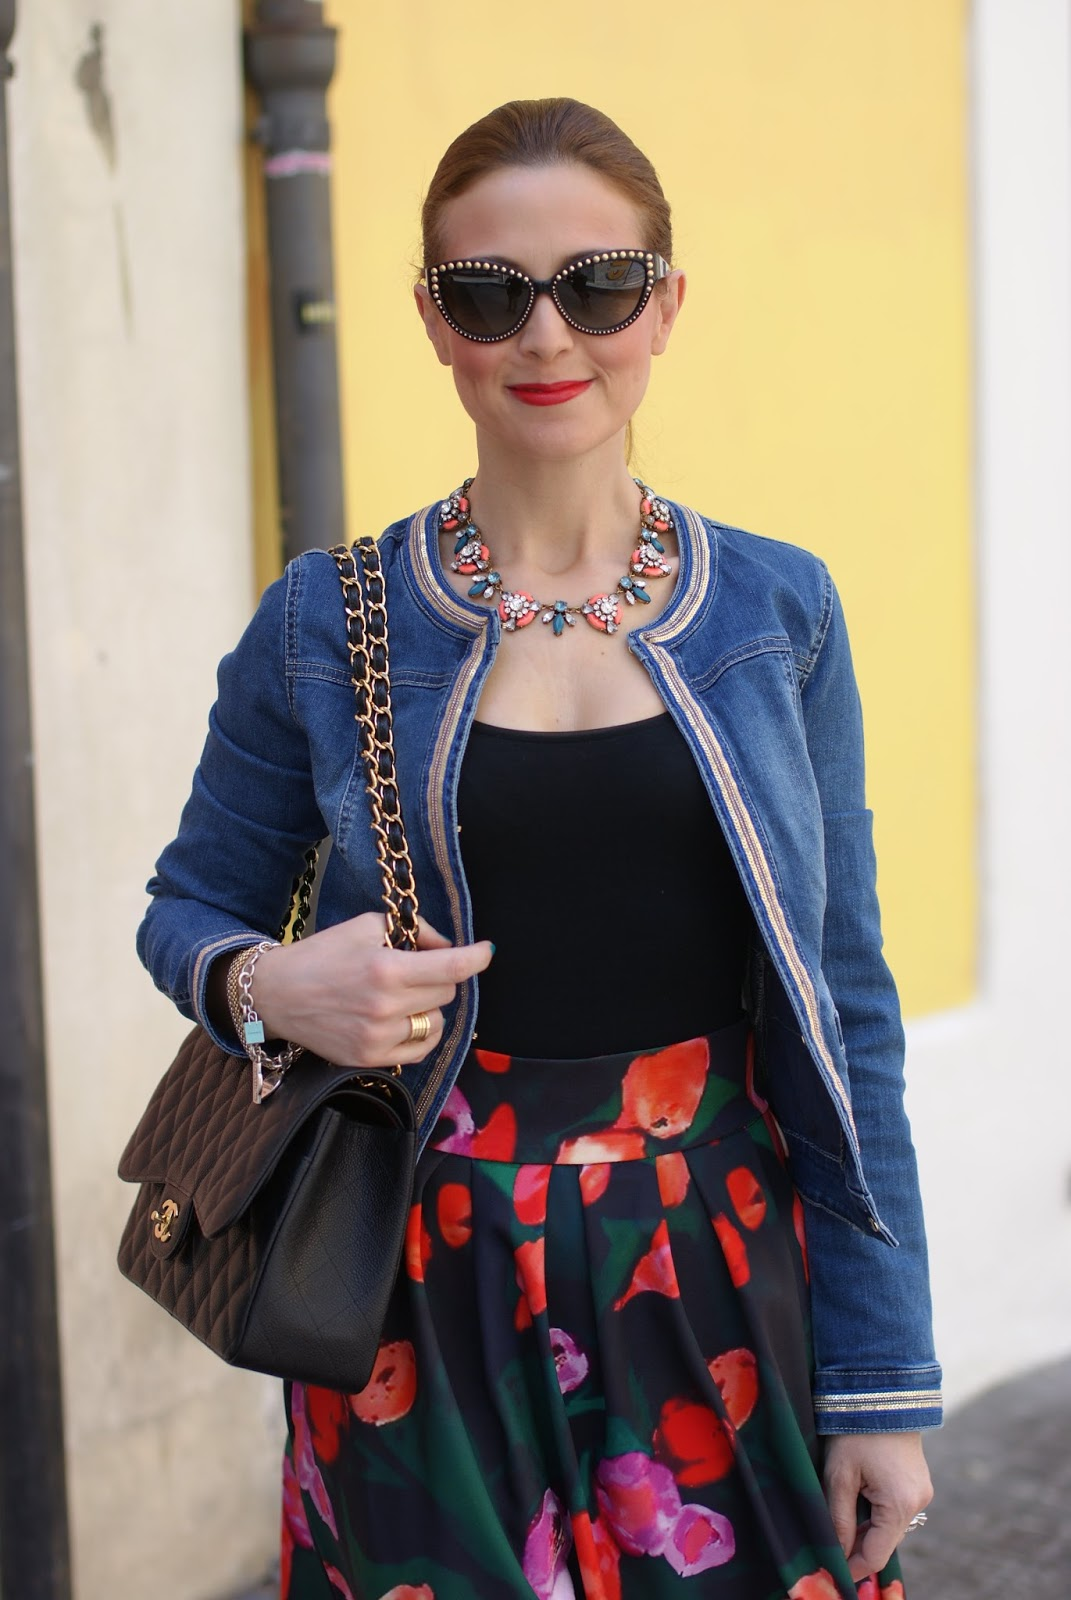 Wolford body worn with skirt, Pimkie denim jacket, Chanel bag, Happiness Boutique necklace and Walktrendy skirt on Fashion and Cookies fashion blog, fashion blogger style